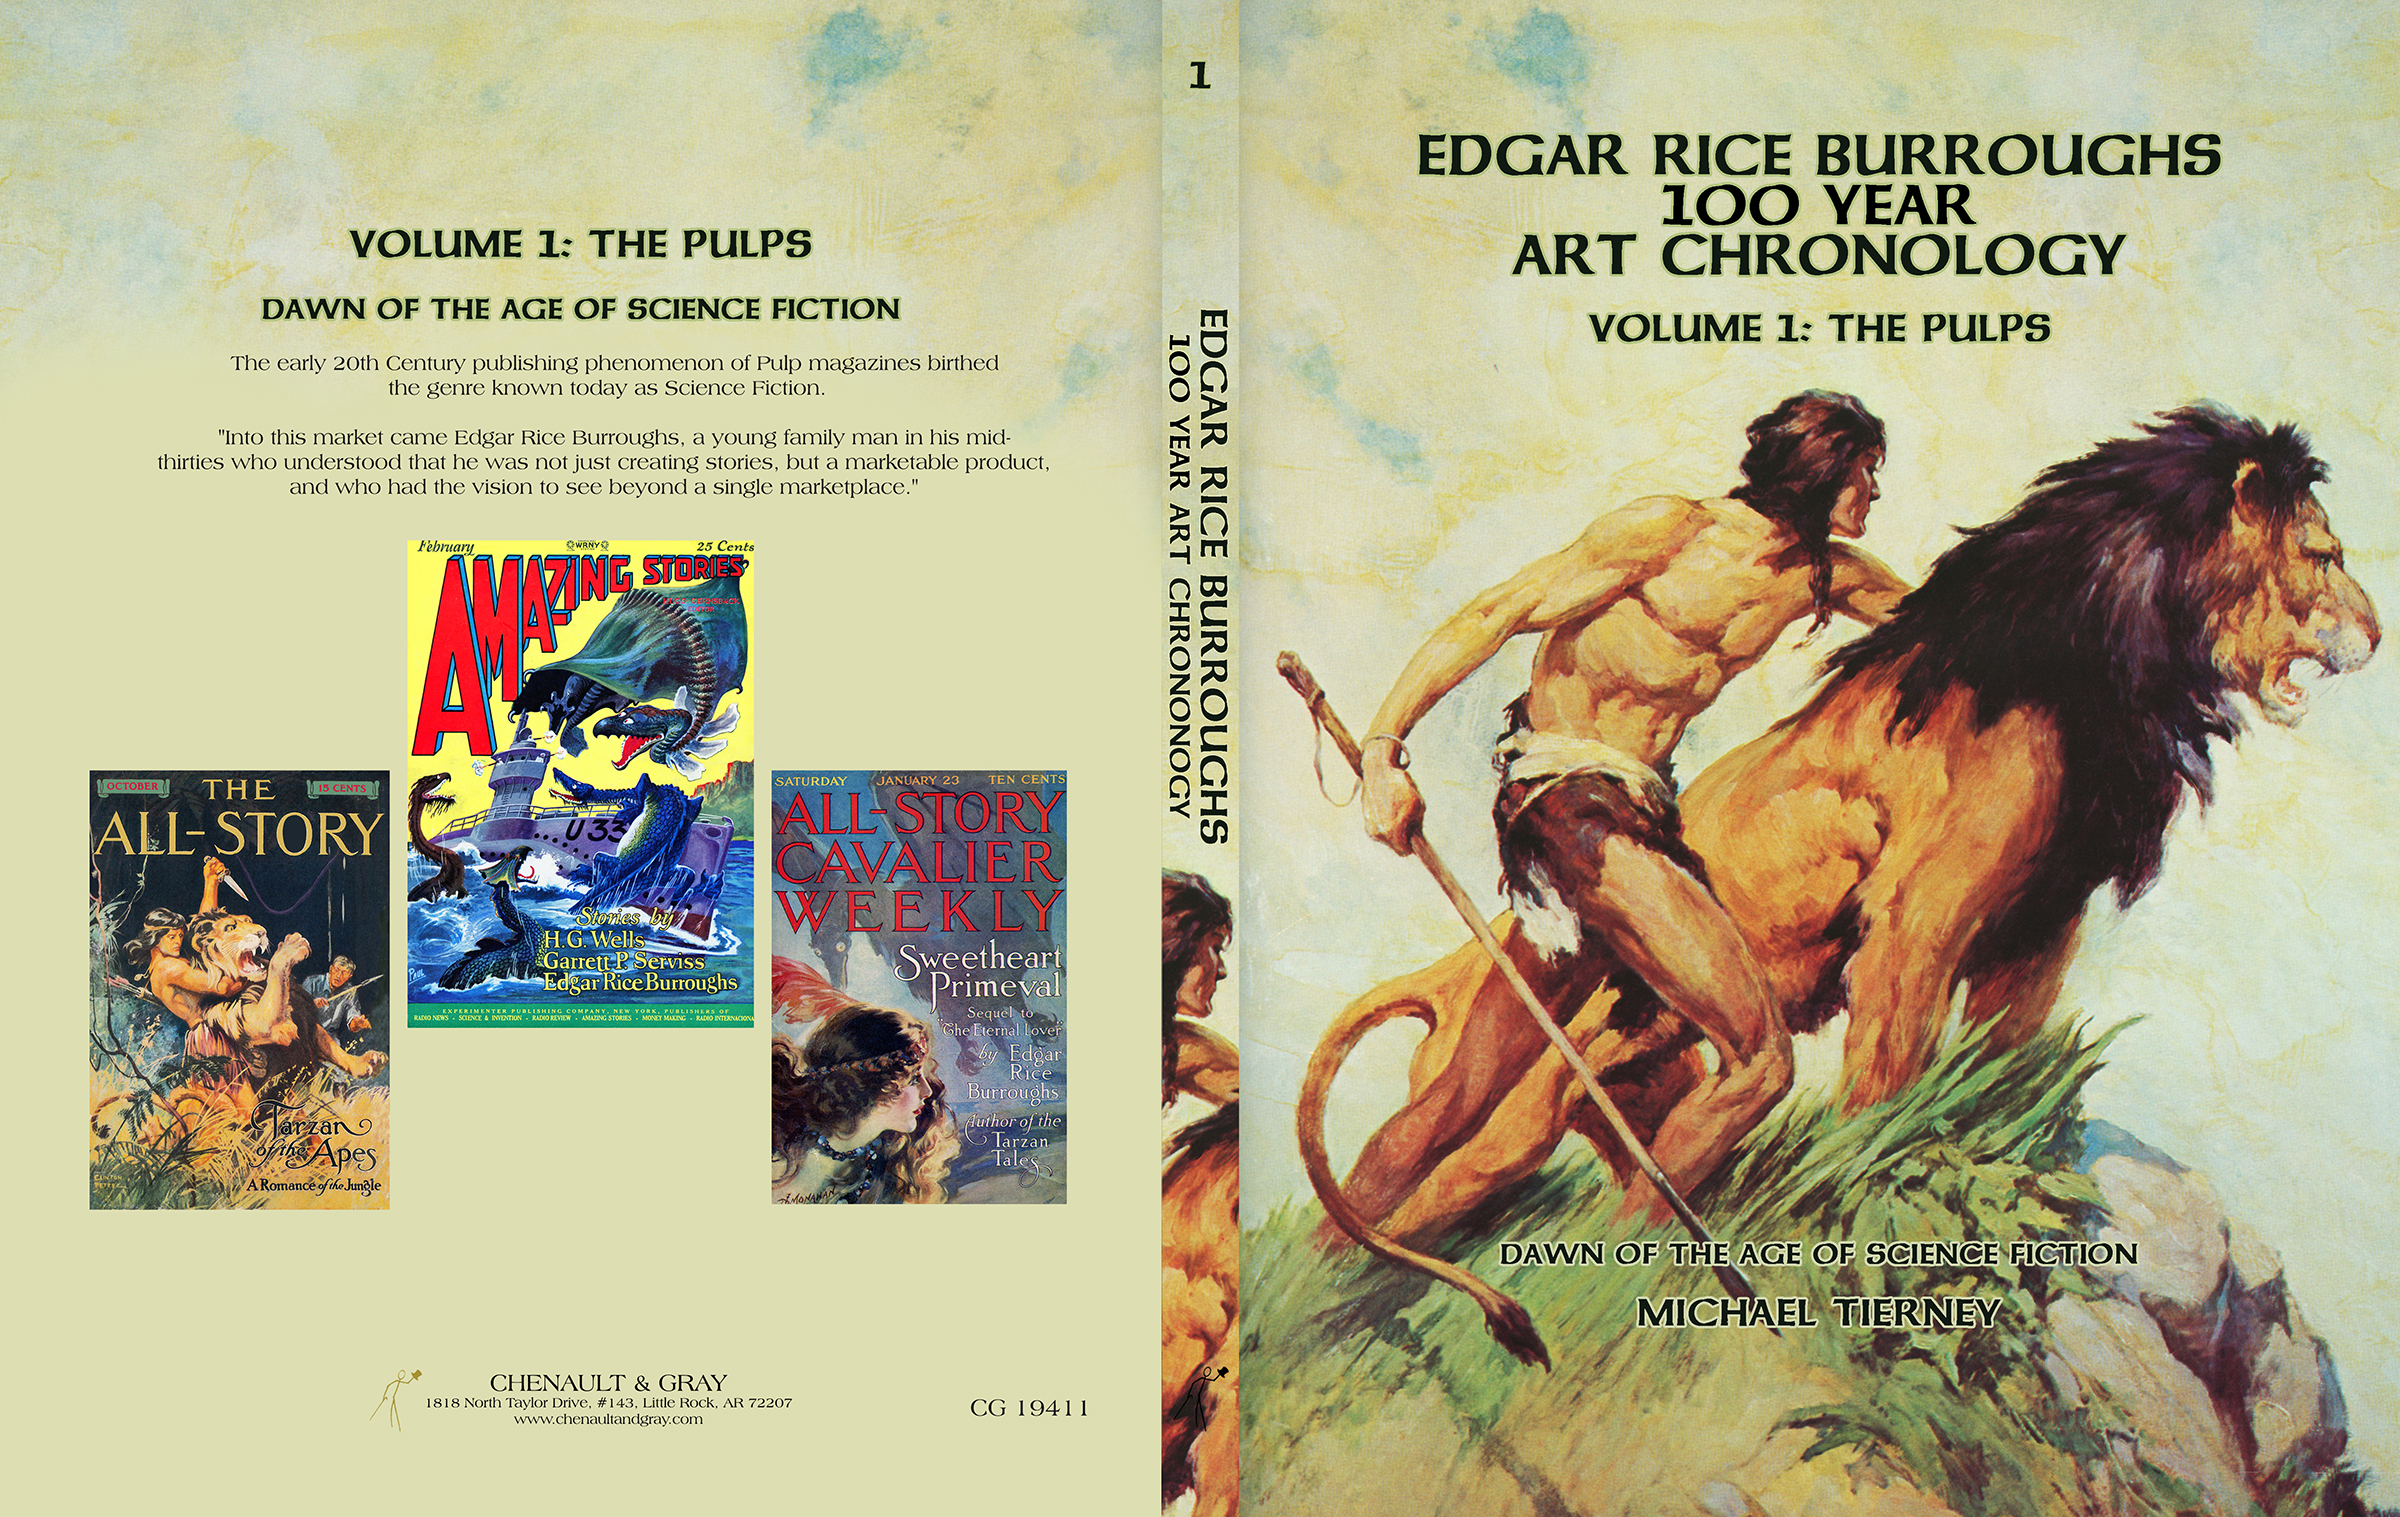 ERBAC v1 wraparound cover